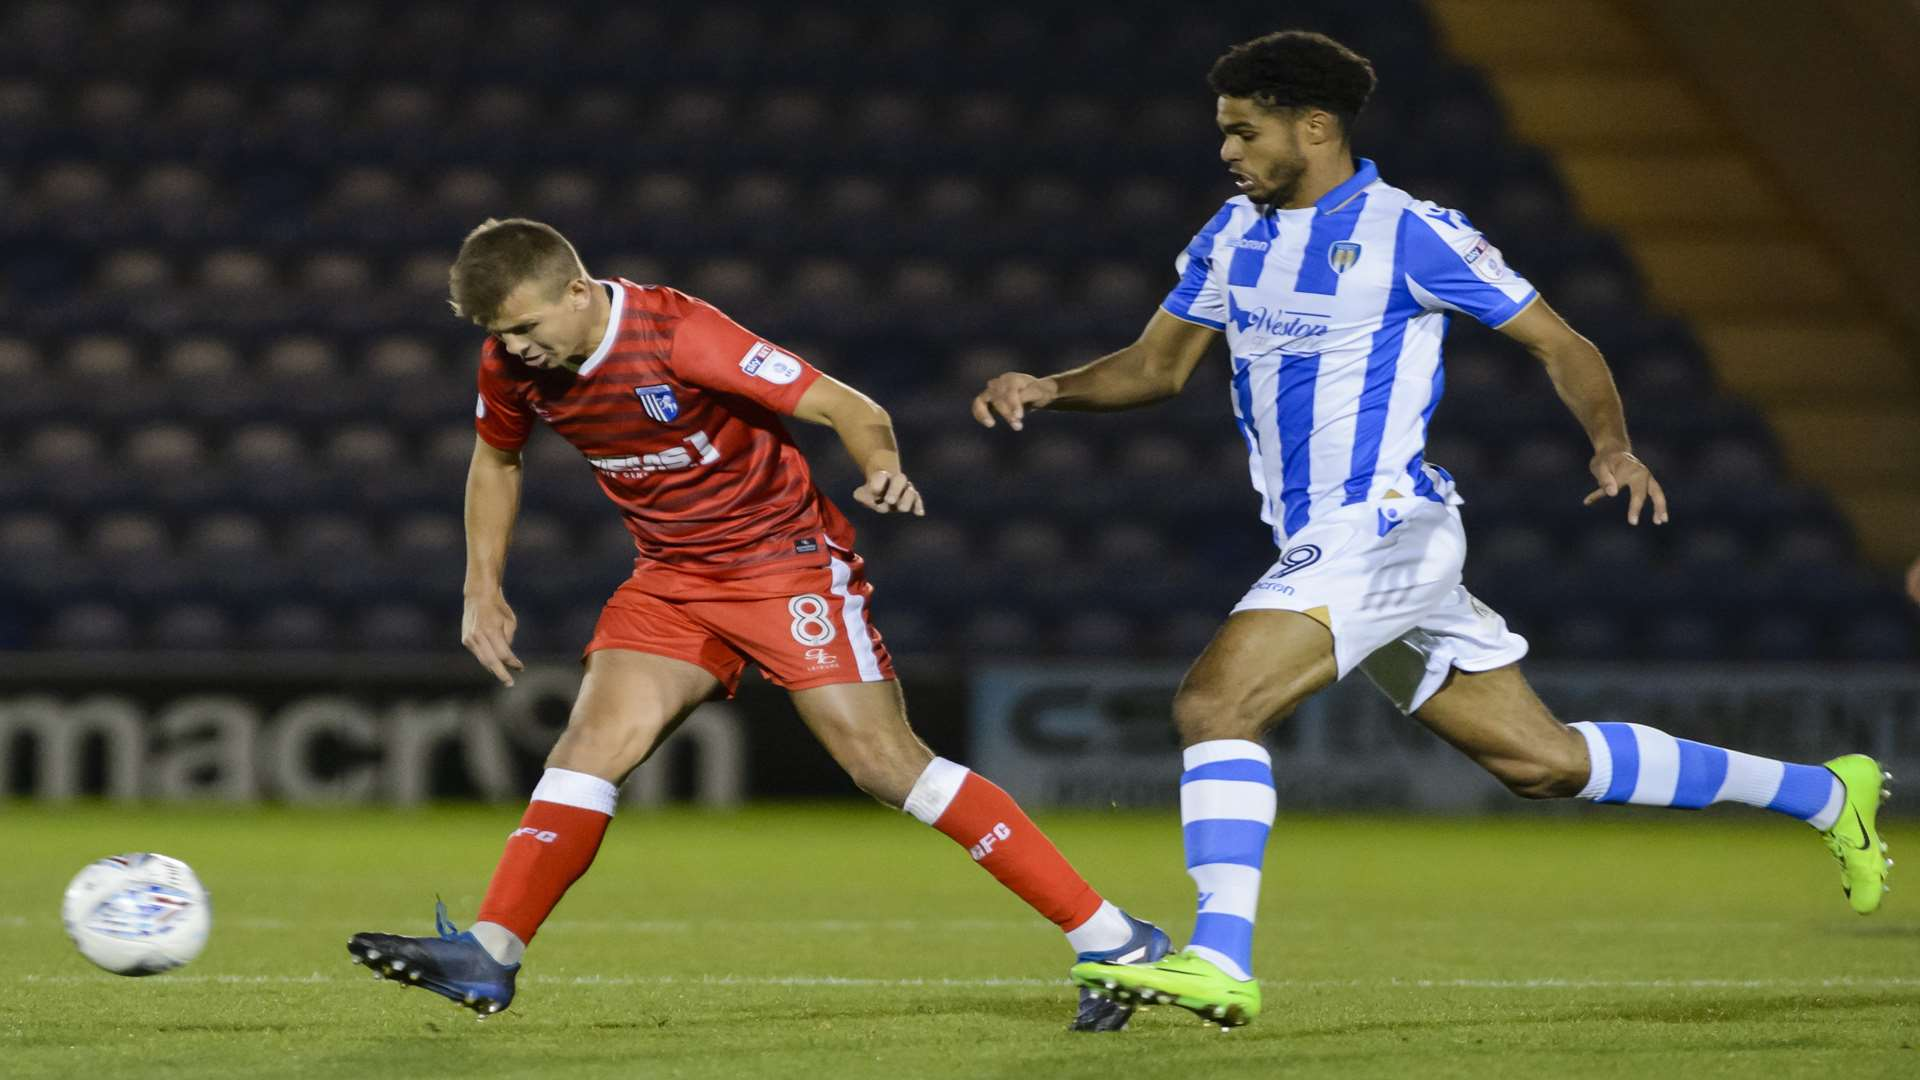 Jake Hessenthaler busy in midfield Picture: Andy Payton